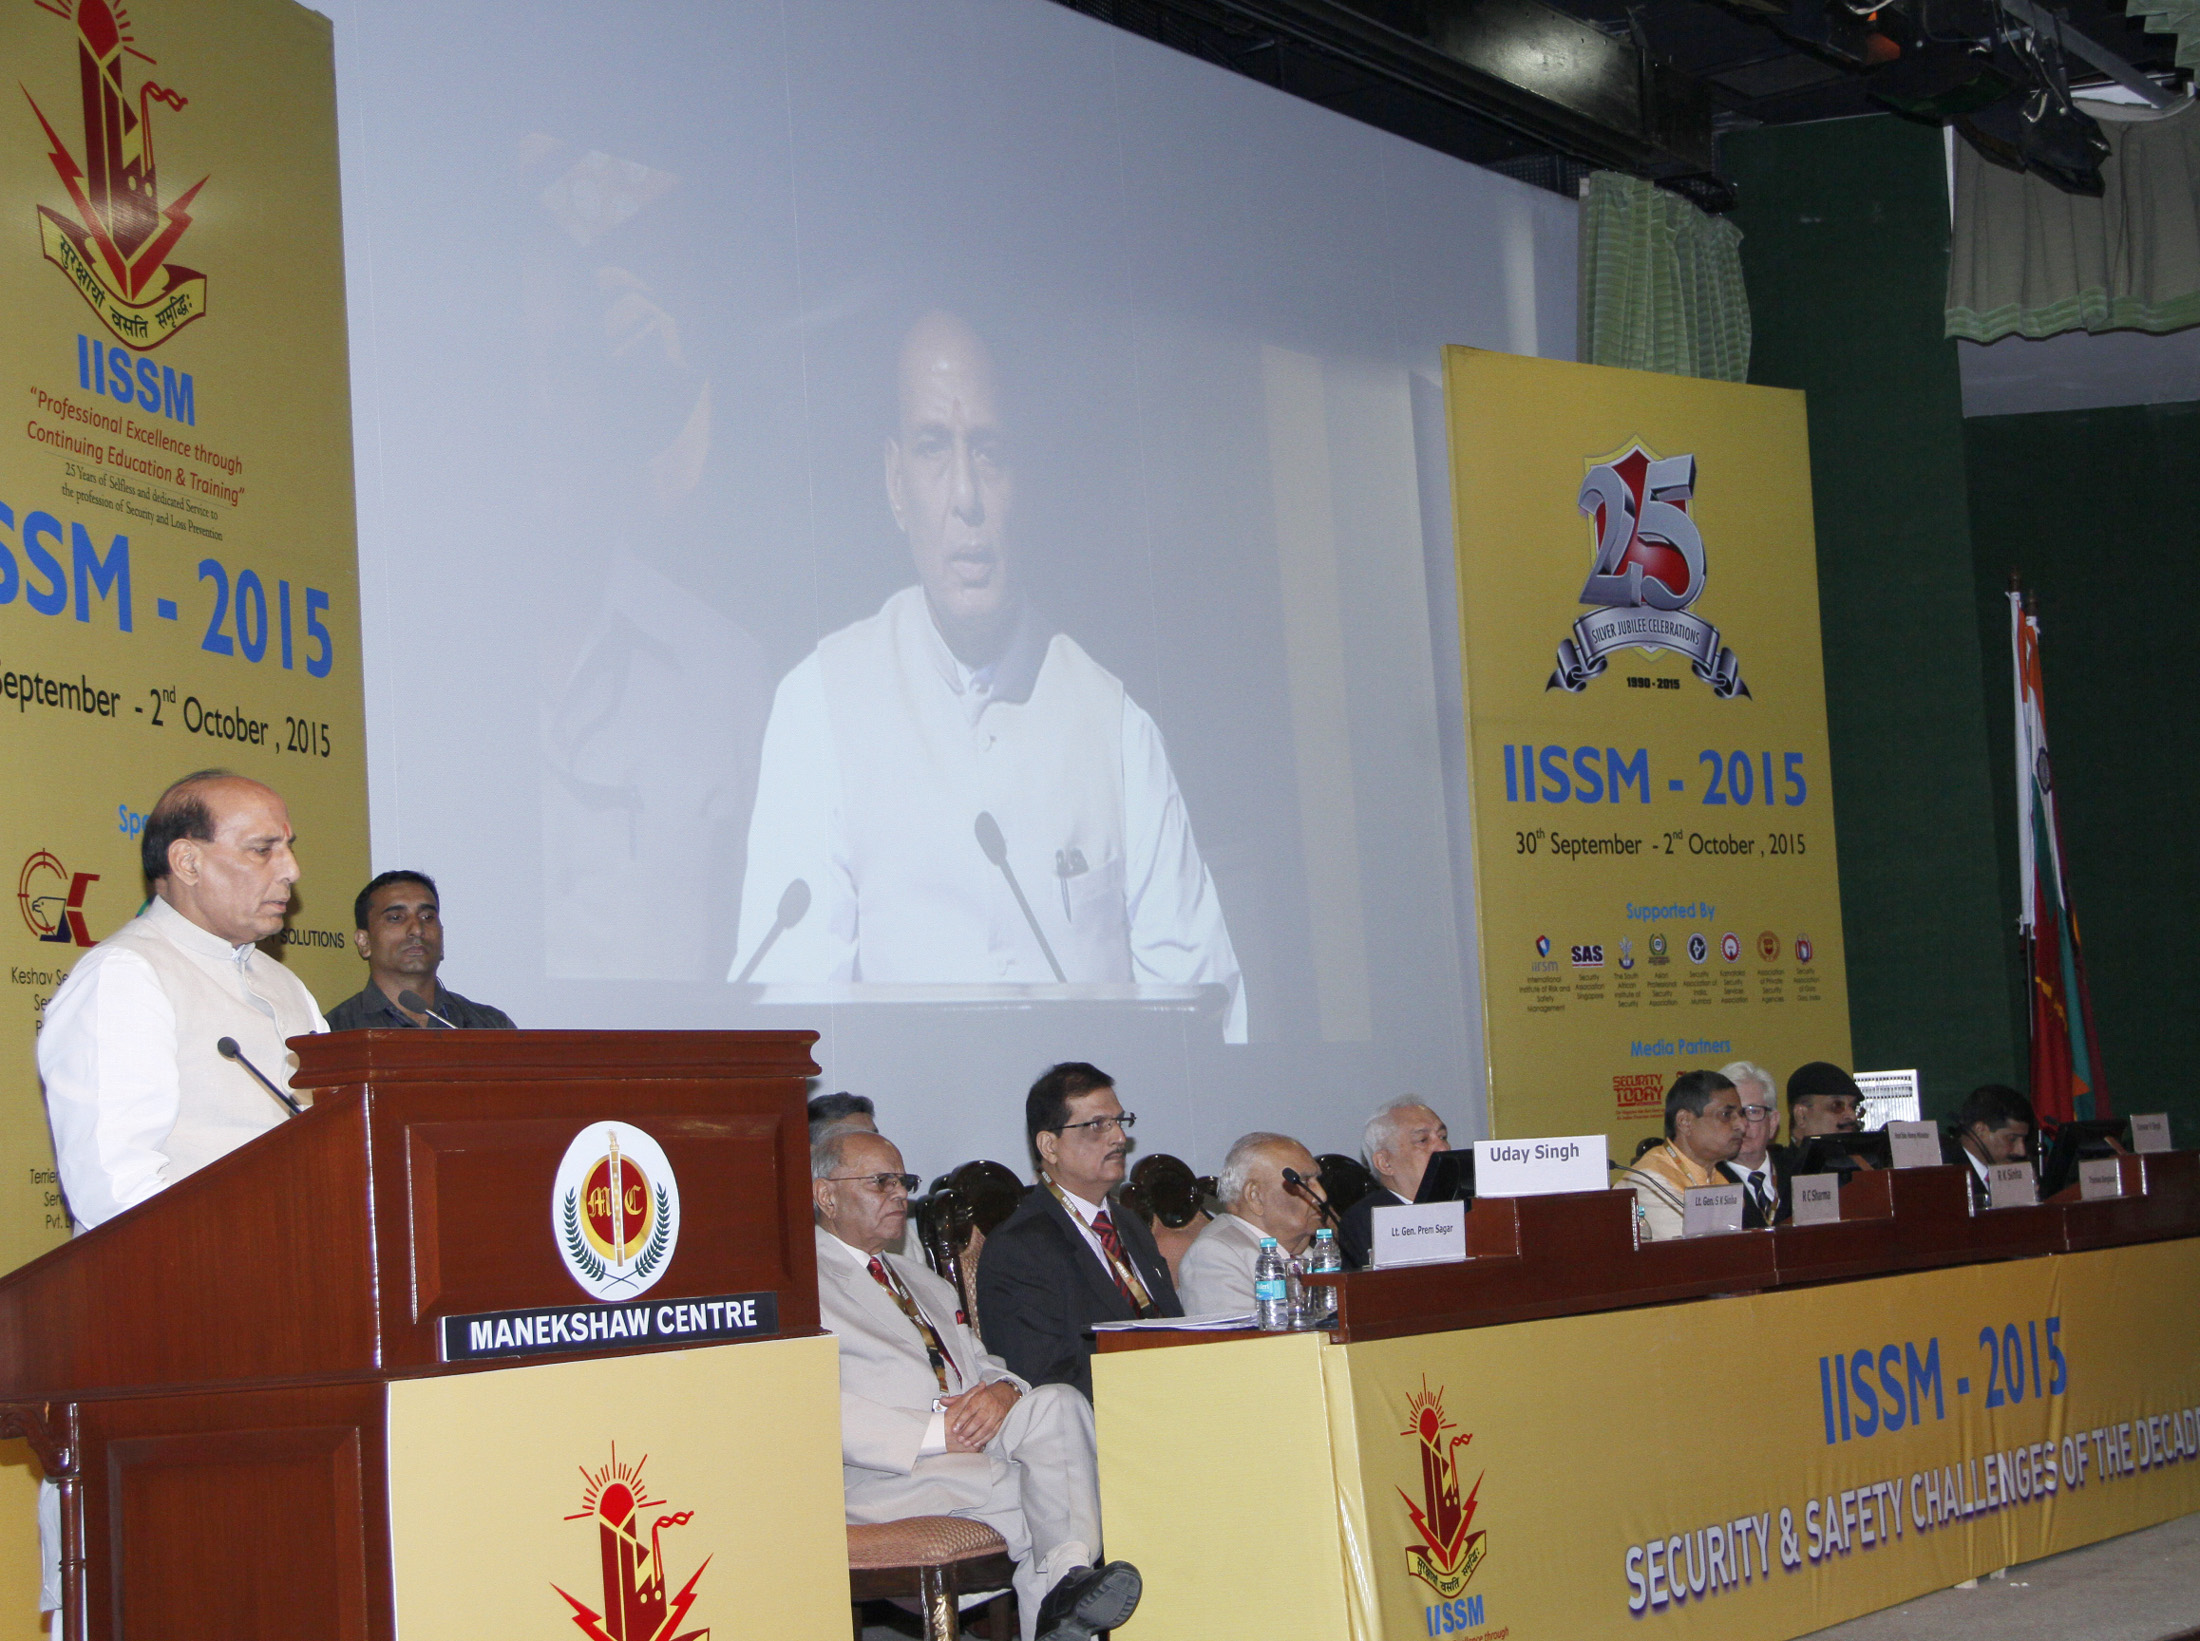 The Union Home Minister, Shri Rajnath Singh addressing at the inauguration of the 25th Annual International Seminar of International Institute of Security and Safety Management (IISSM), in New Delhi on October 01, 2015.